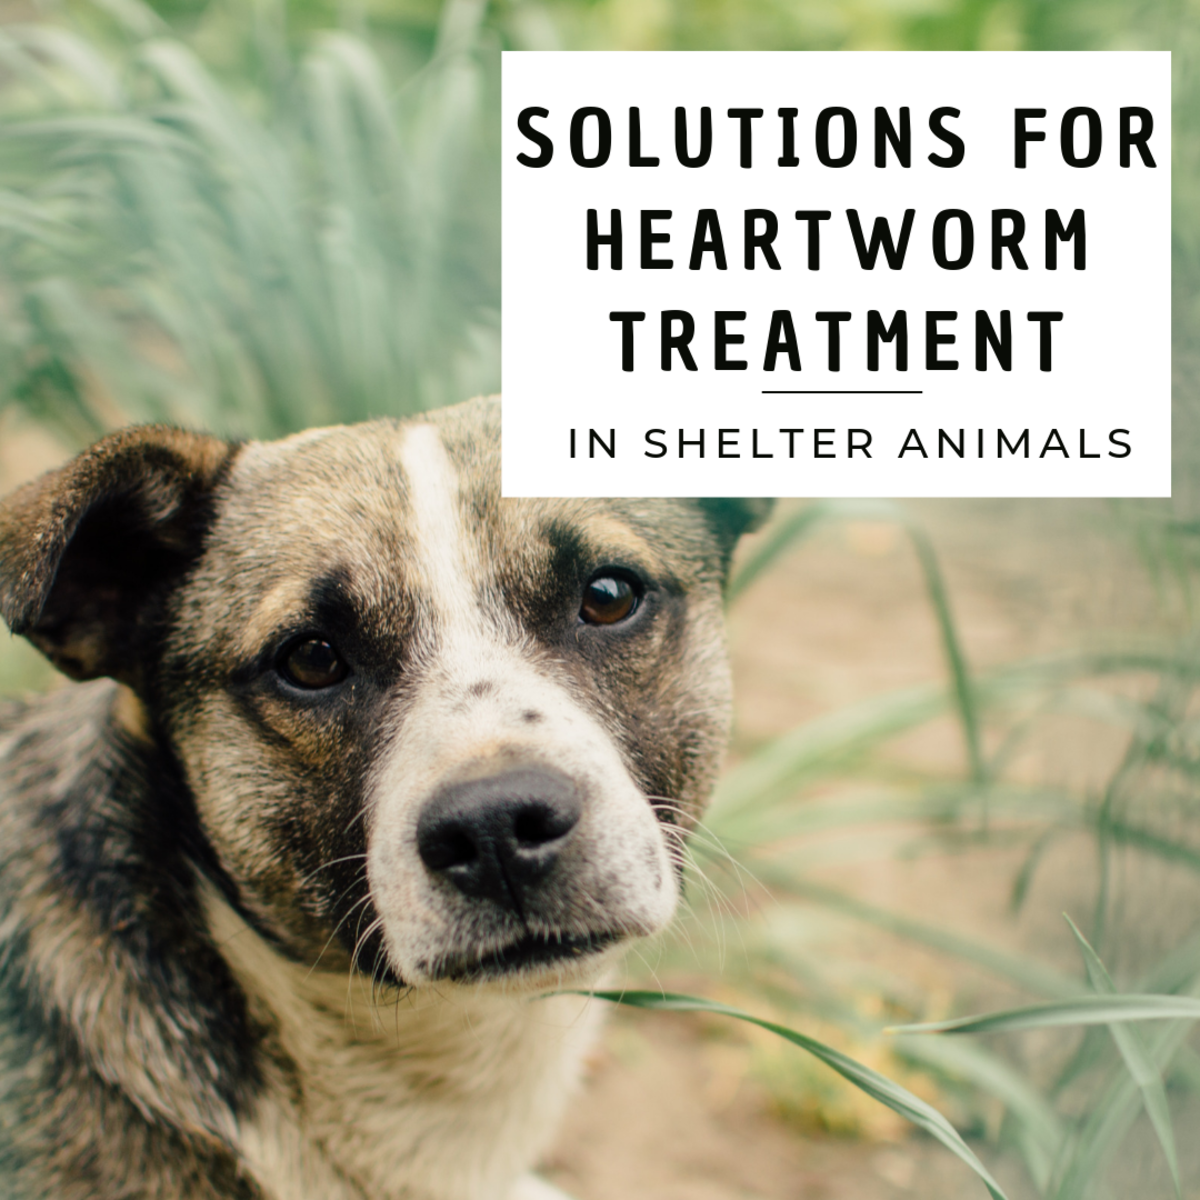 Animal Shelter Designs a New Way to Treat Heartworm in Dogs